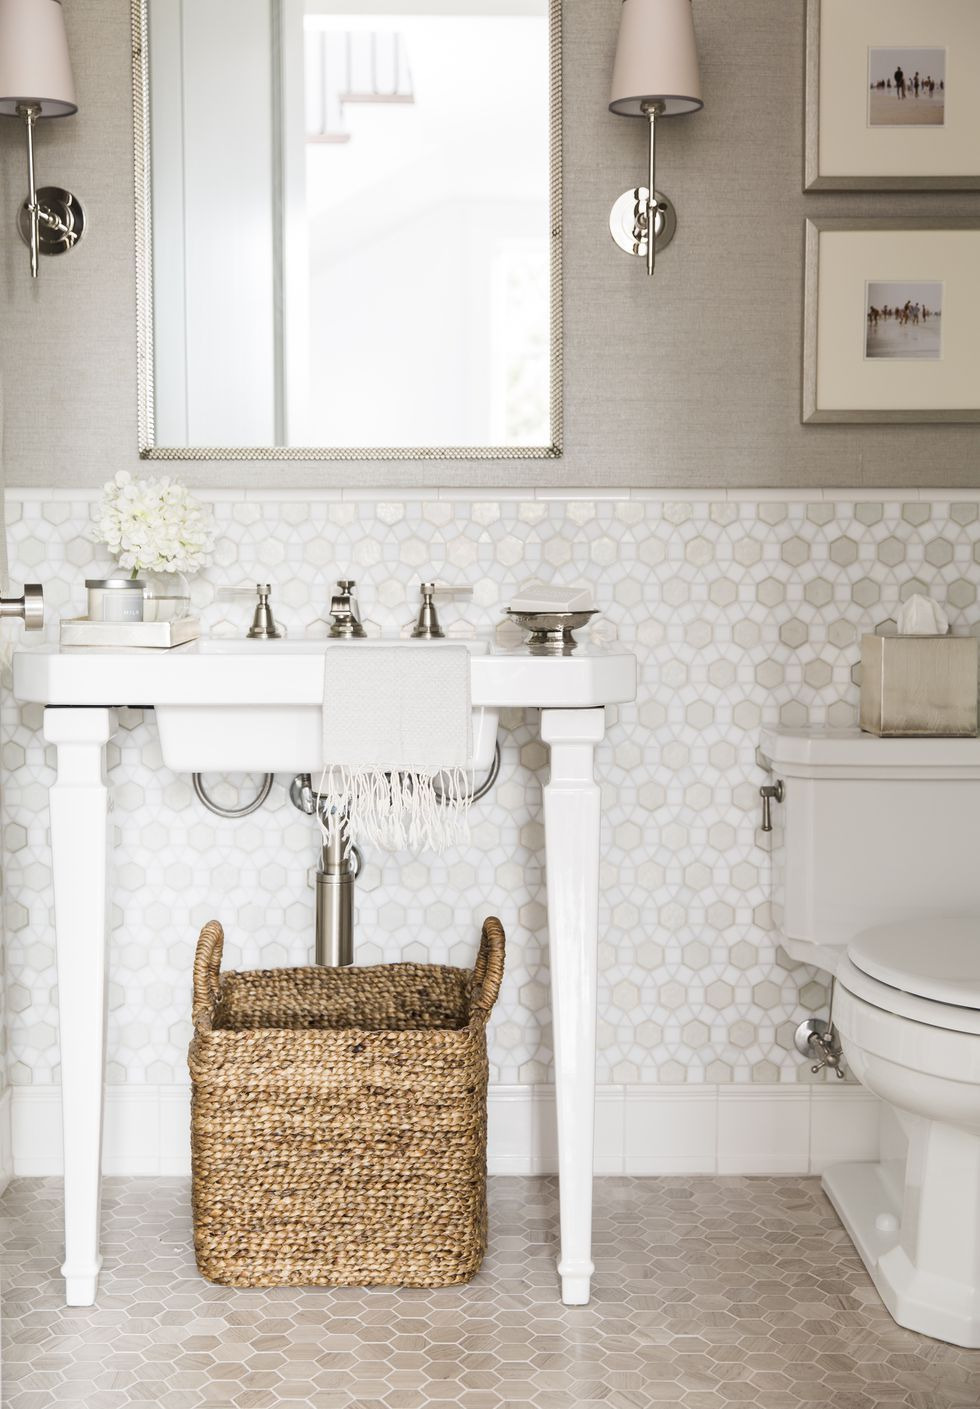 How to Decorate Small Bathrooms Luxury Small Bathrooms Design Ideas 2020 How to Decorate Small